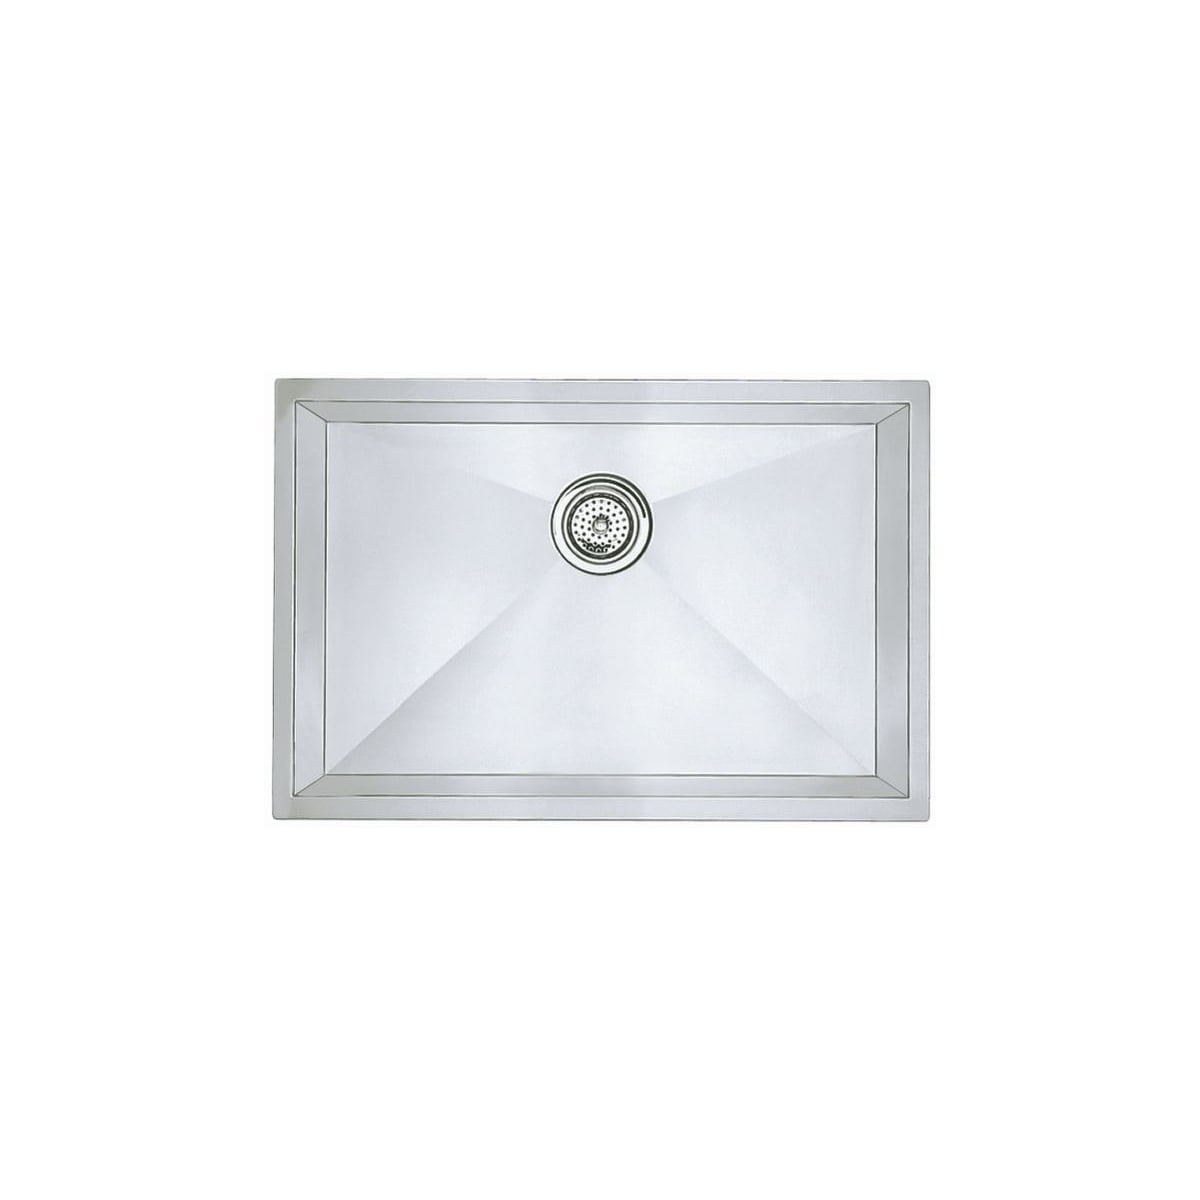 "Blanco Precision Single Basin Undermount Stainless Steel Kitchen Sink with Zero Radius Corners 25"" x 18"""